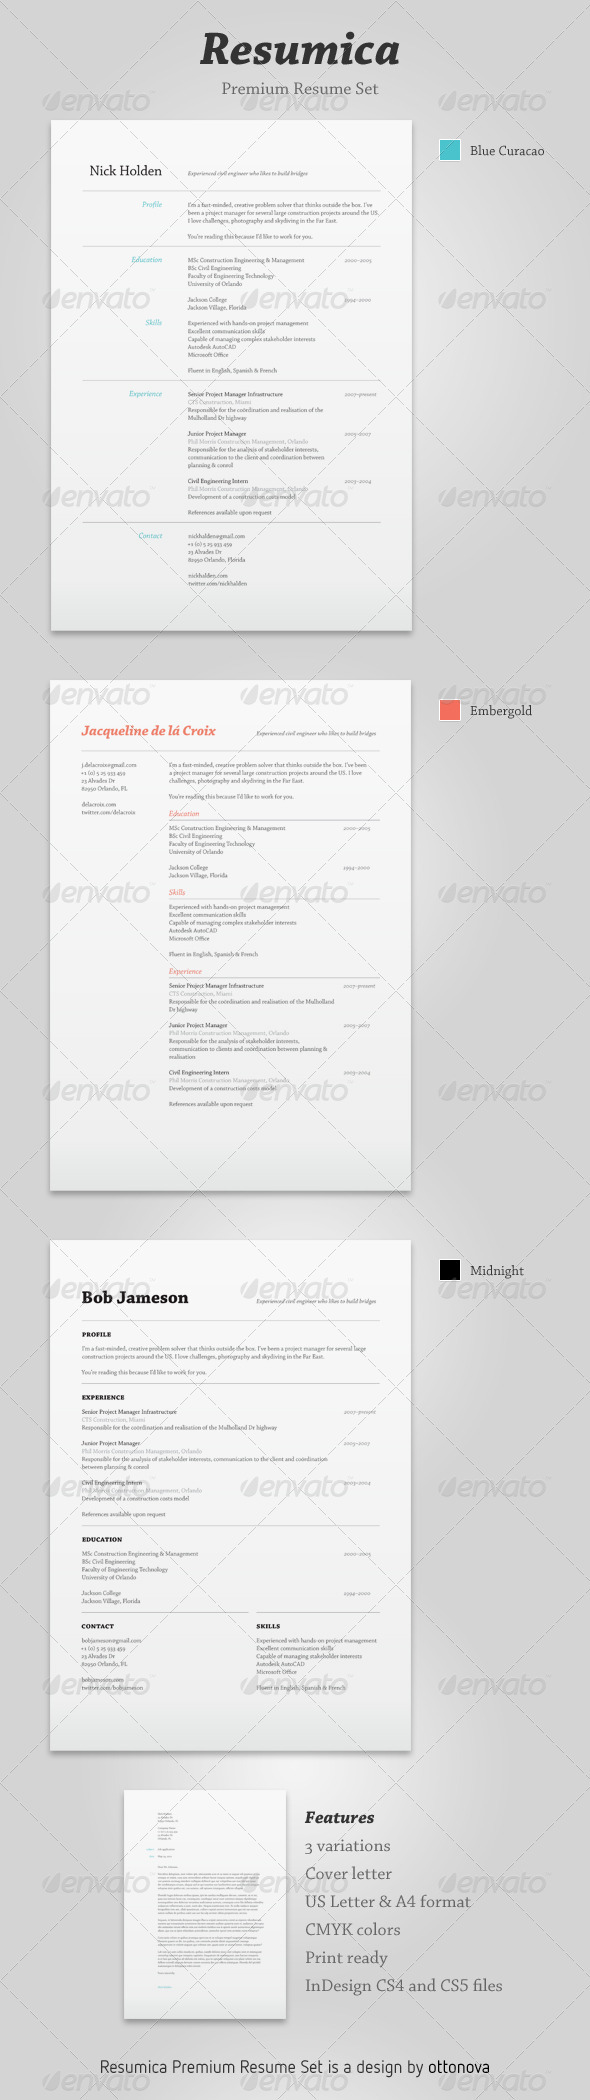 Resumica Resume Set  Resume In Indesign